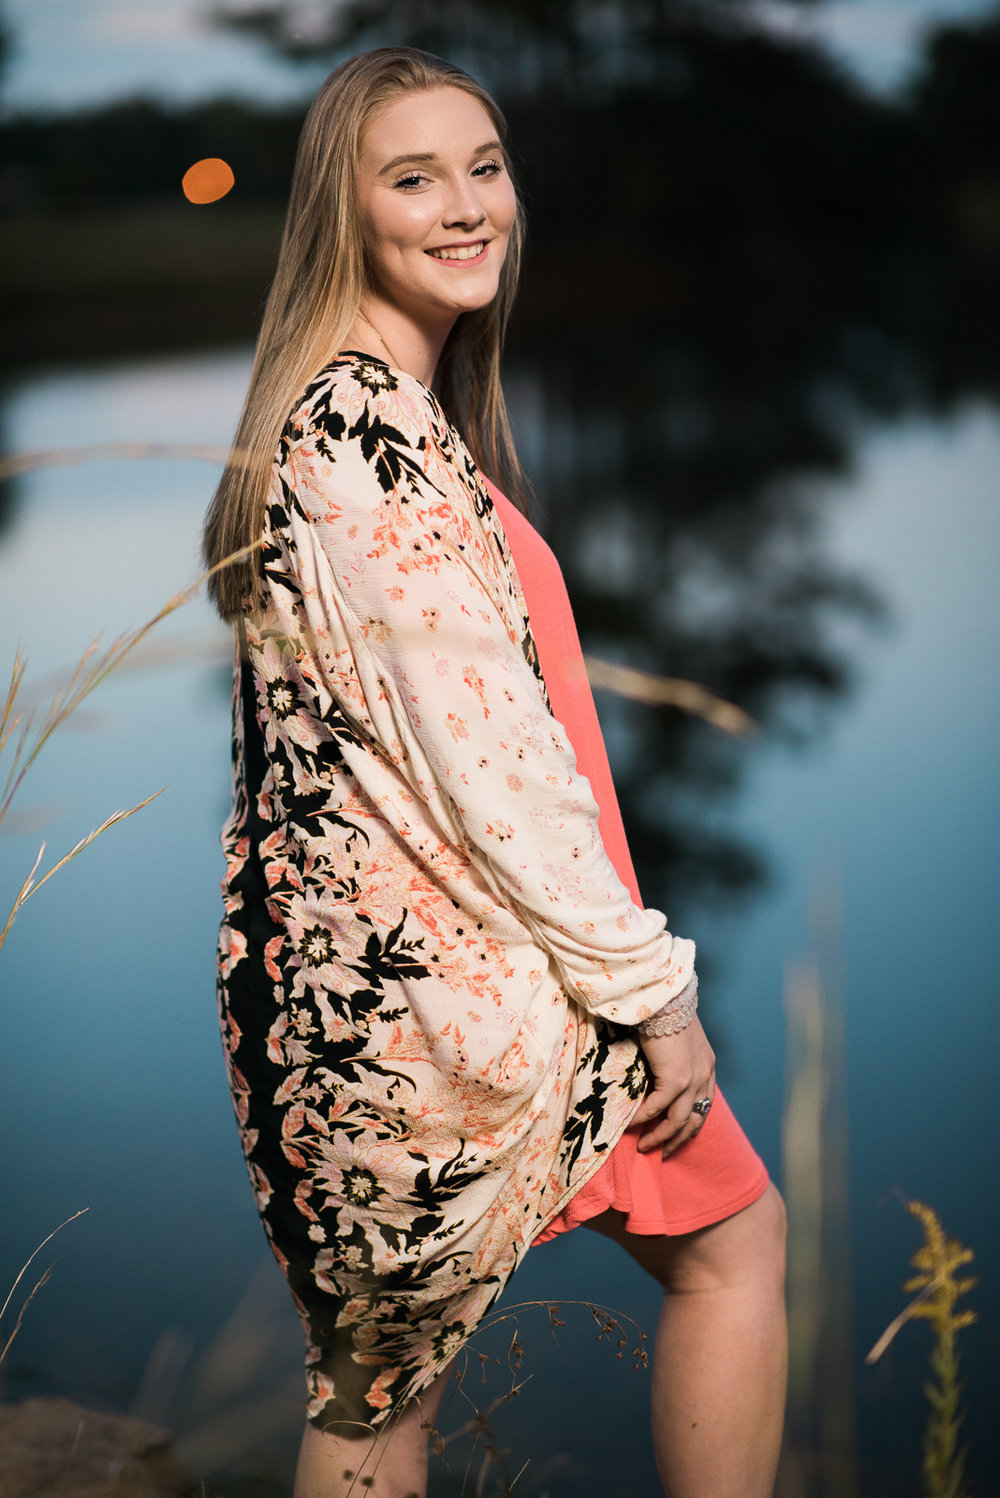 Ashlynn-Sumrall-MS-Senior-Photos-16.jpg